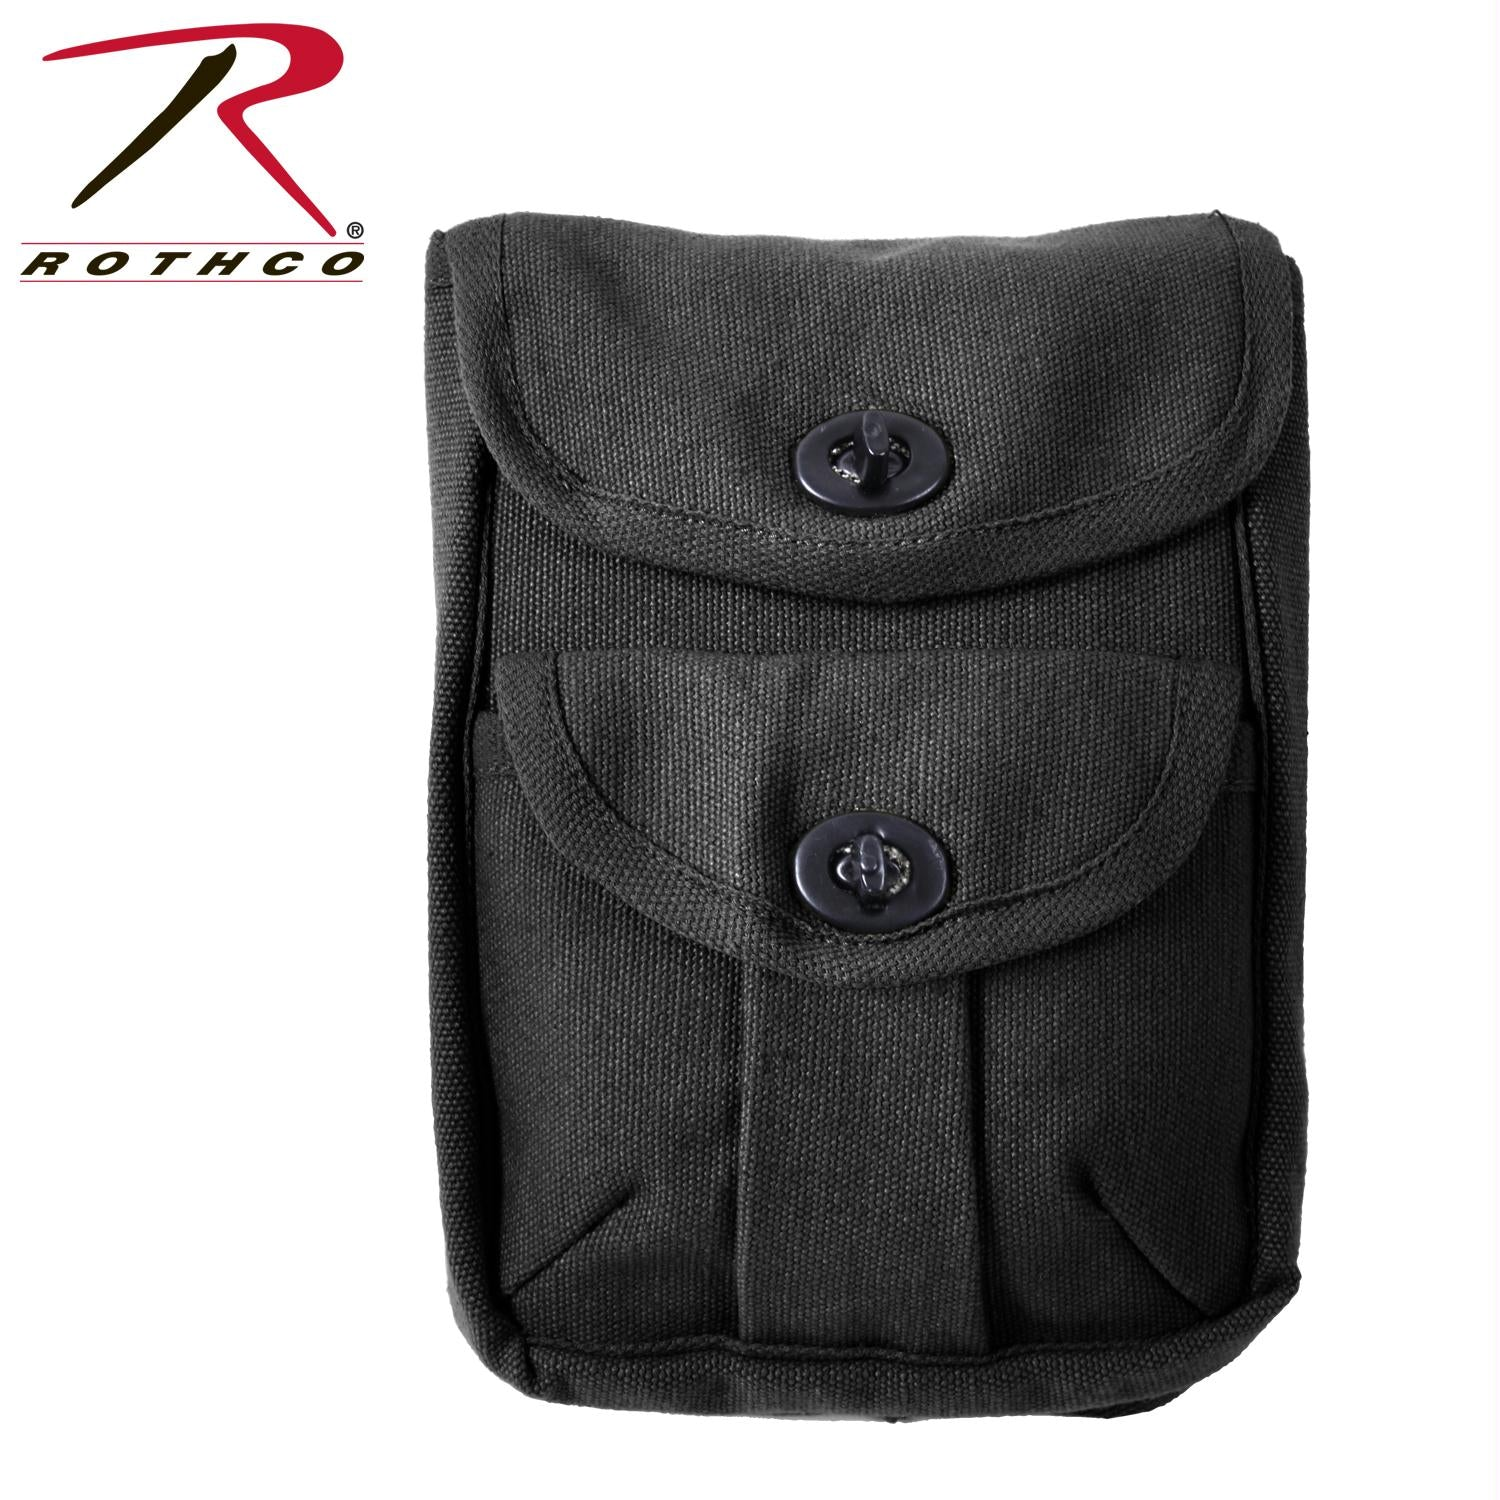 Rothco Ammo Pouches - Black